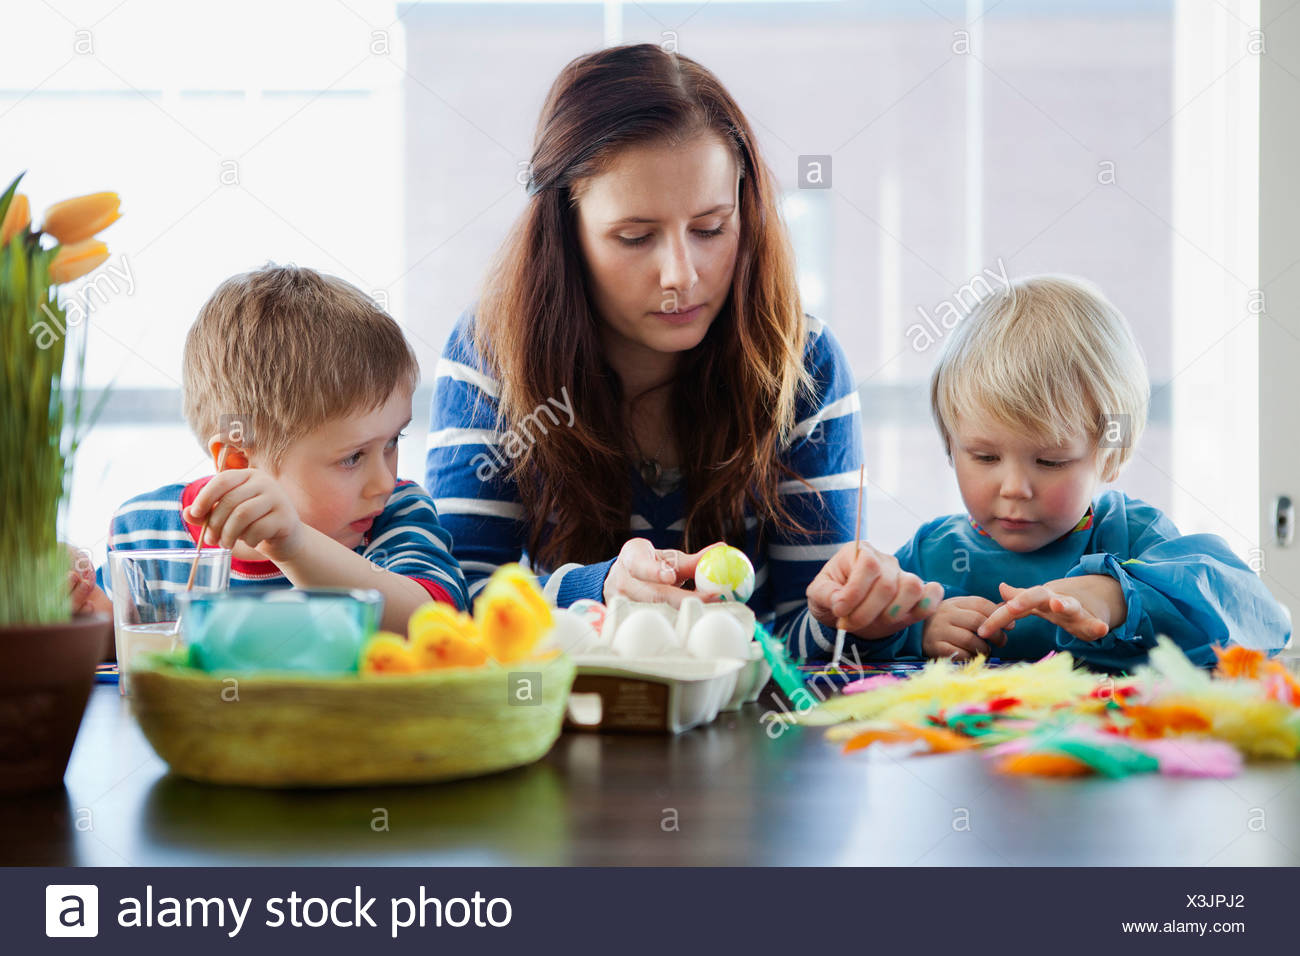 Mother with two children (2-3), (4-5) making Easter eggs - Stock Image